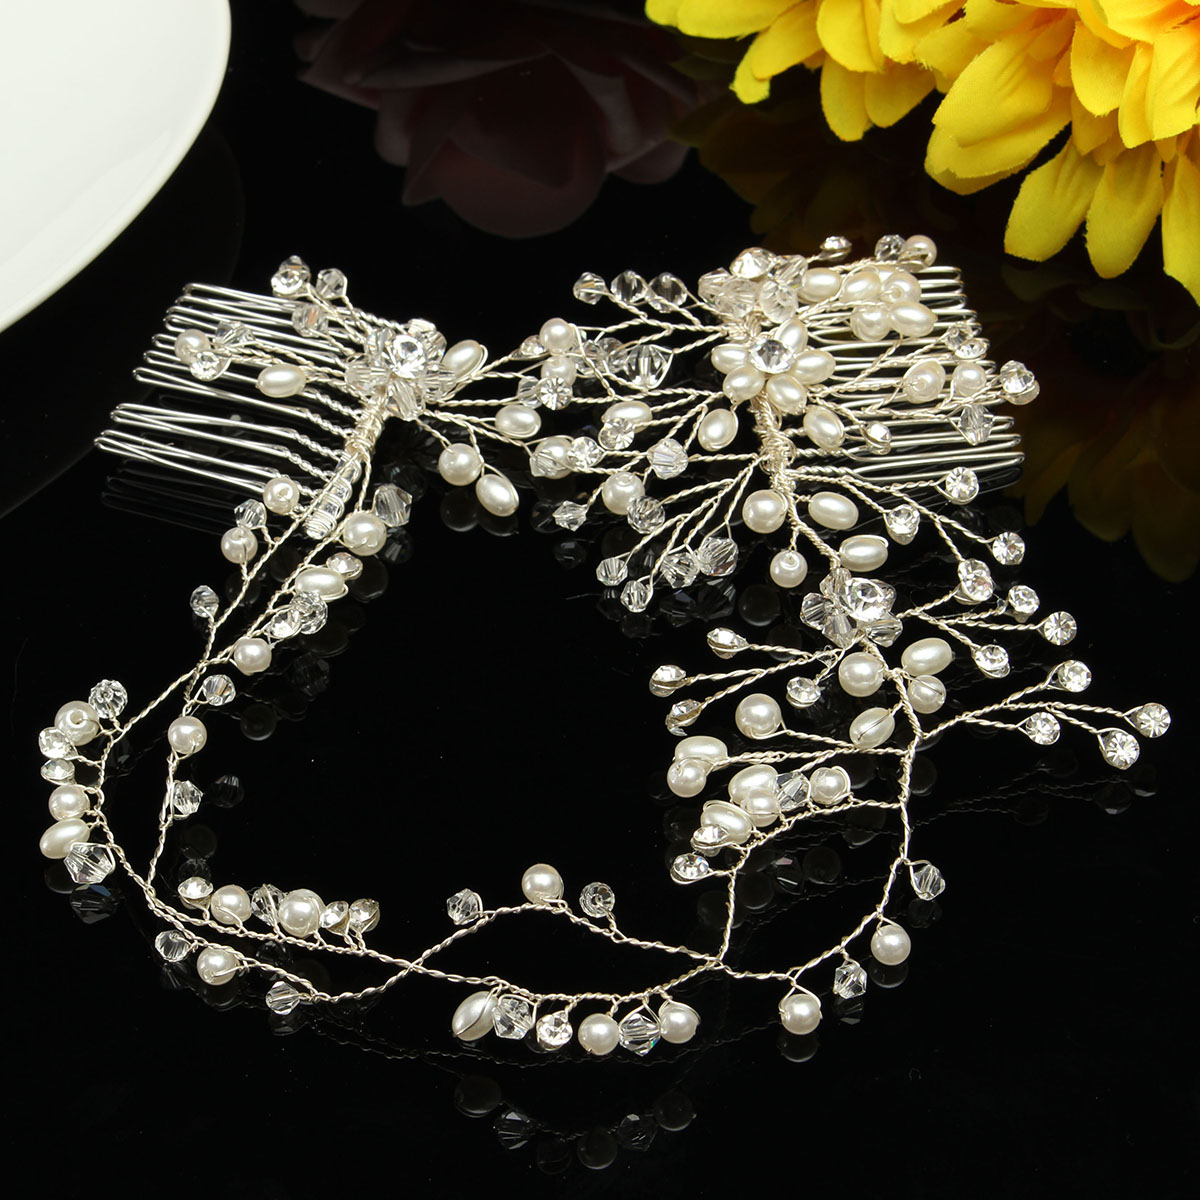 Bride Luxury Crystal Pearl Bead Hair Chain Comb Wedding Bridal Tiara Hair Accessories Headbrand